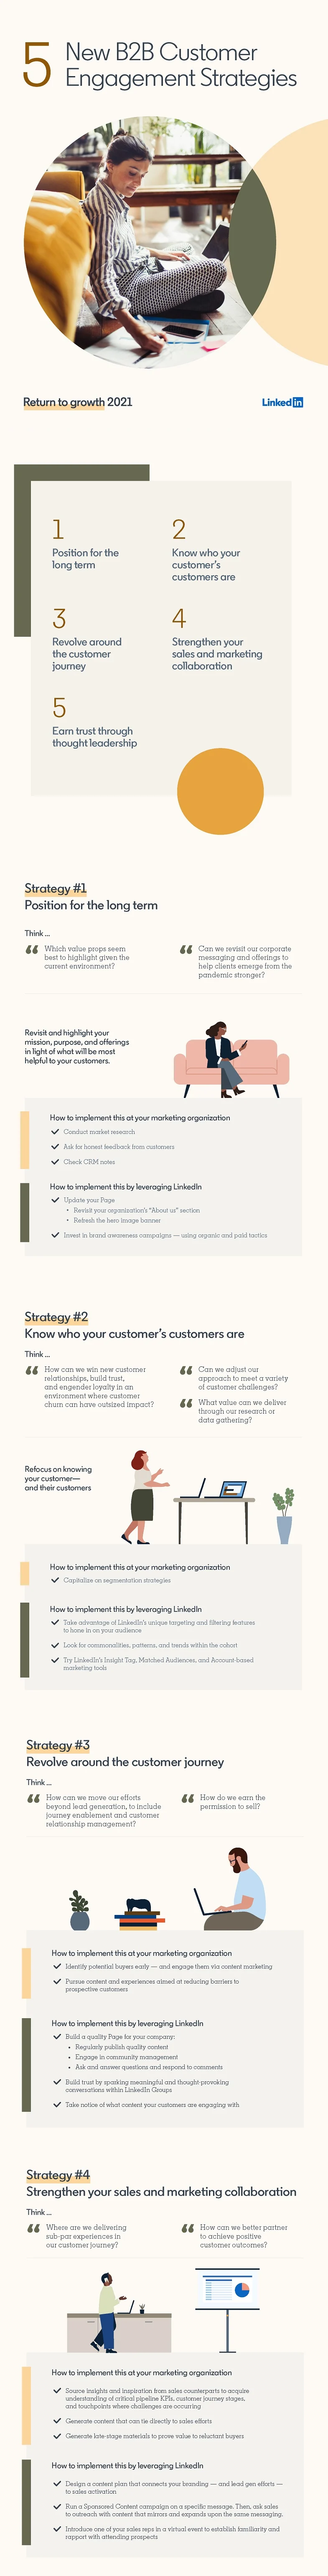 Infographic with B2B customer engagement strategy tips.